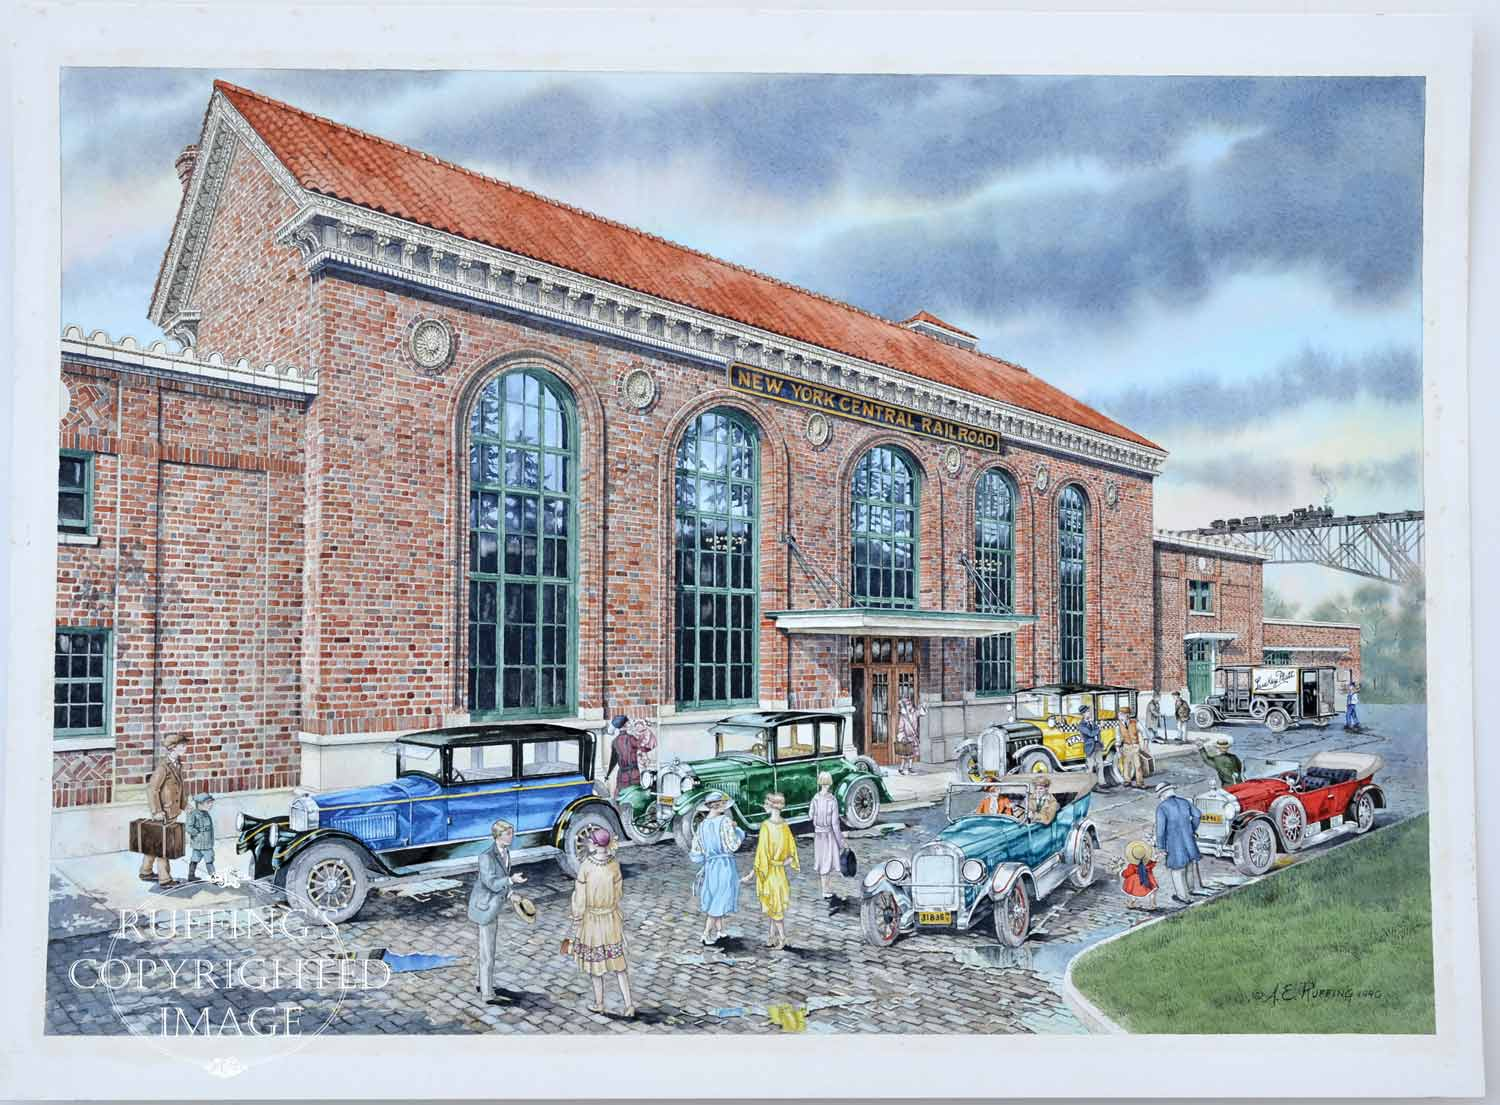 Down At The Station, Poughkeepsie Train Station Historical Original Watercolor by A E Ruffing